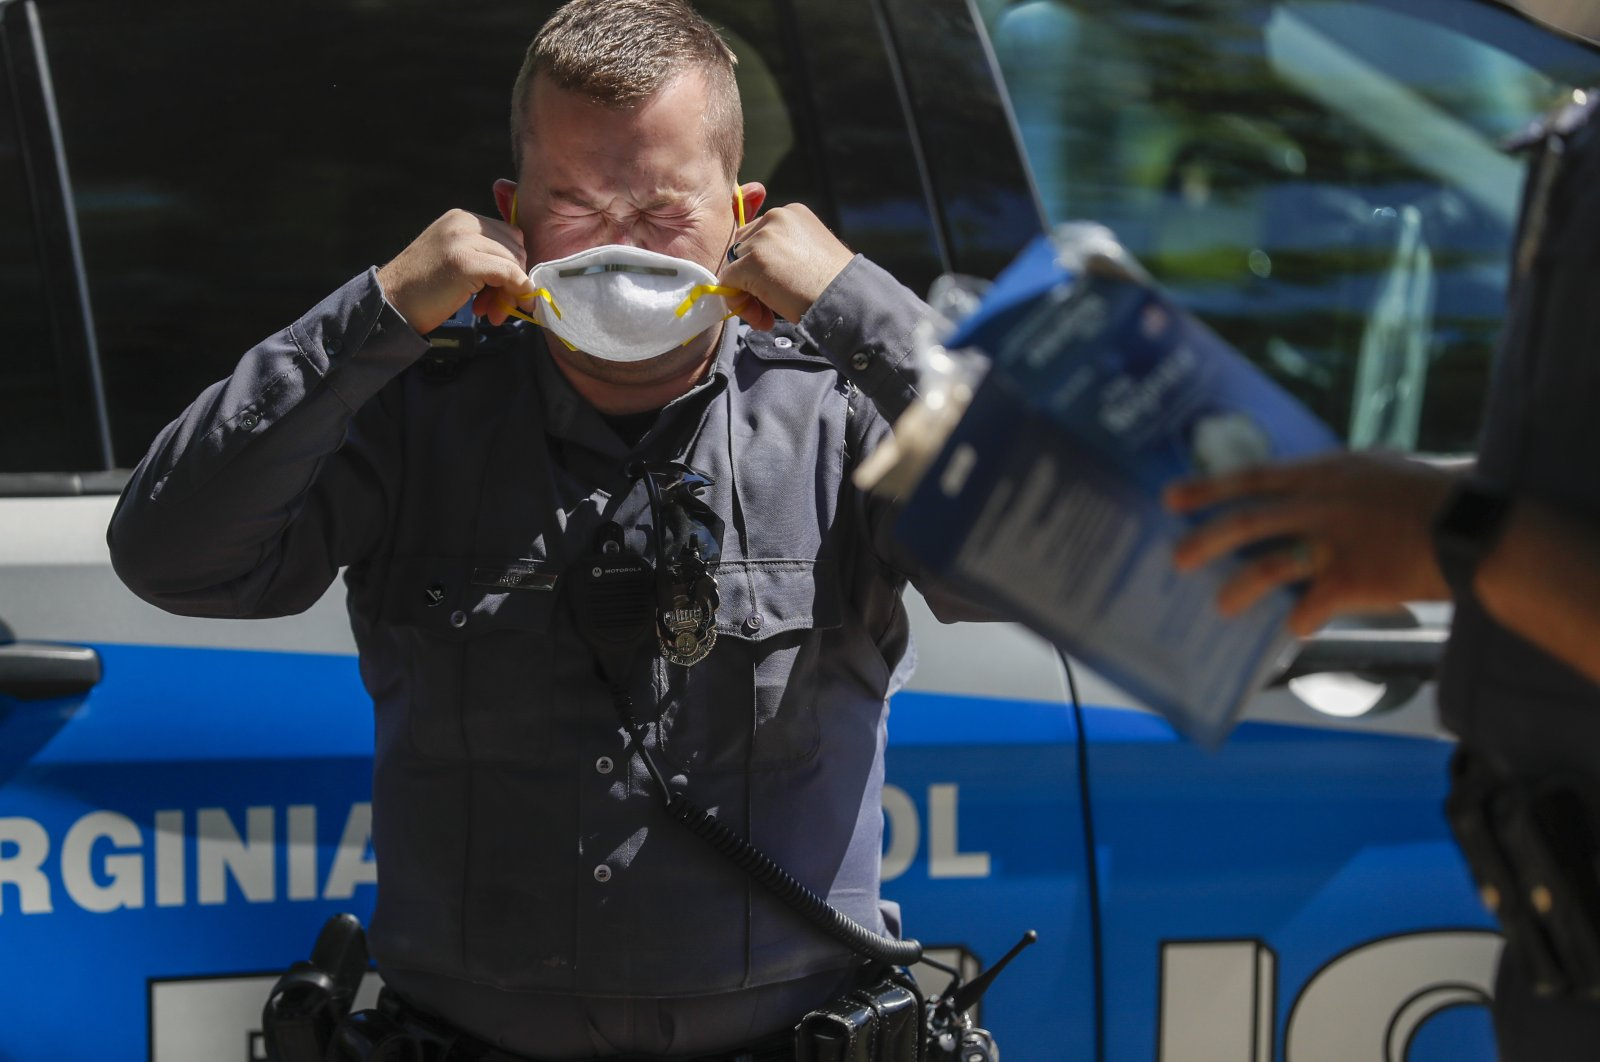 A police officer puts on a mask as protesters upset with the government's stay-at-home order due to the coronavirus pandemic rally at the State Capitol in Richmond, Virginia, U.S., April 16, 2020. (EPA Photo)